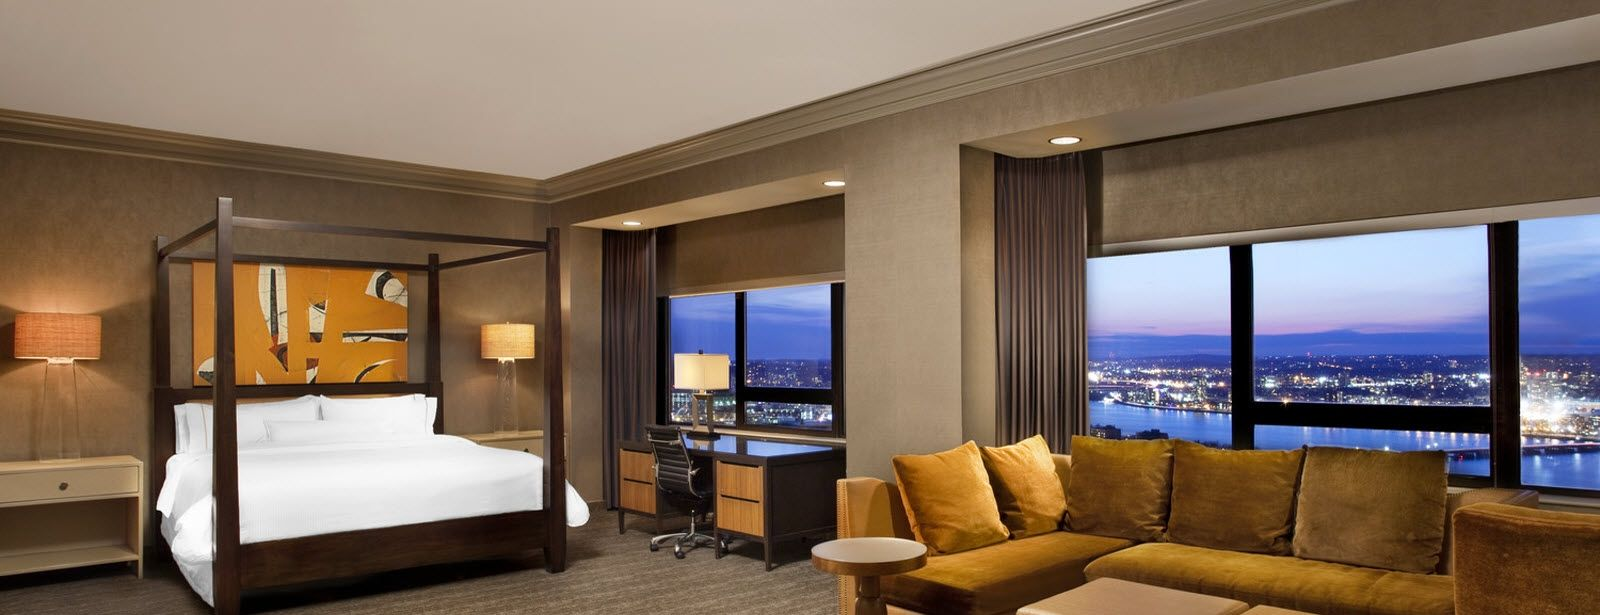 The Westin Copley Place, Boston presidential suite seating